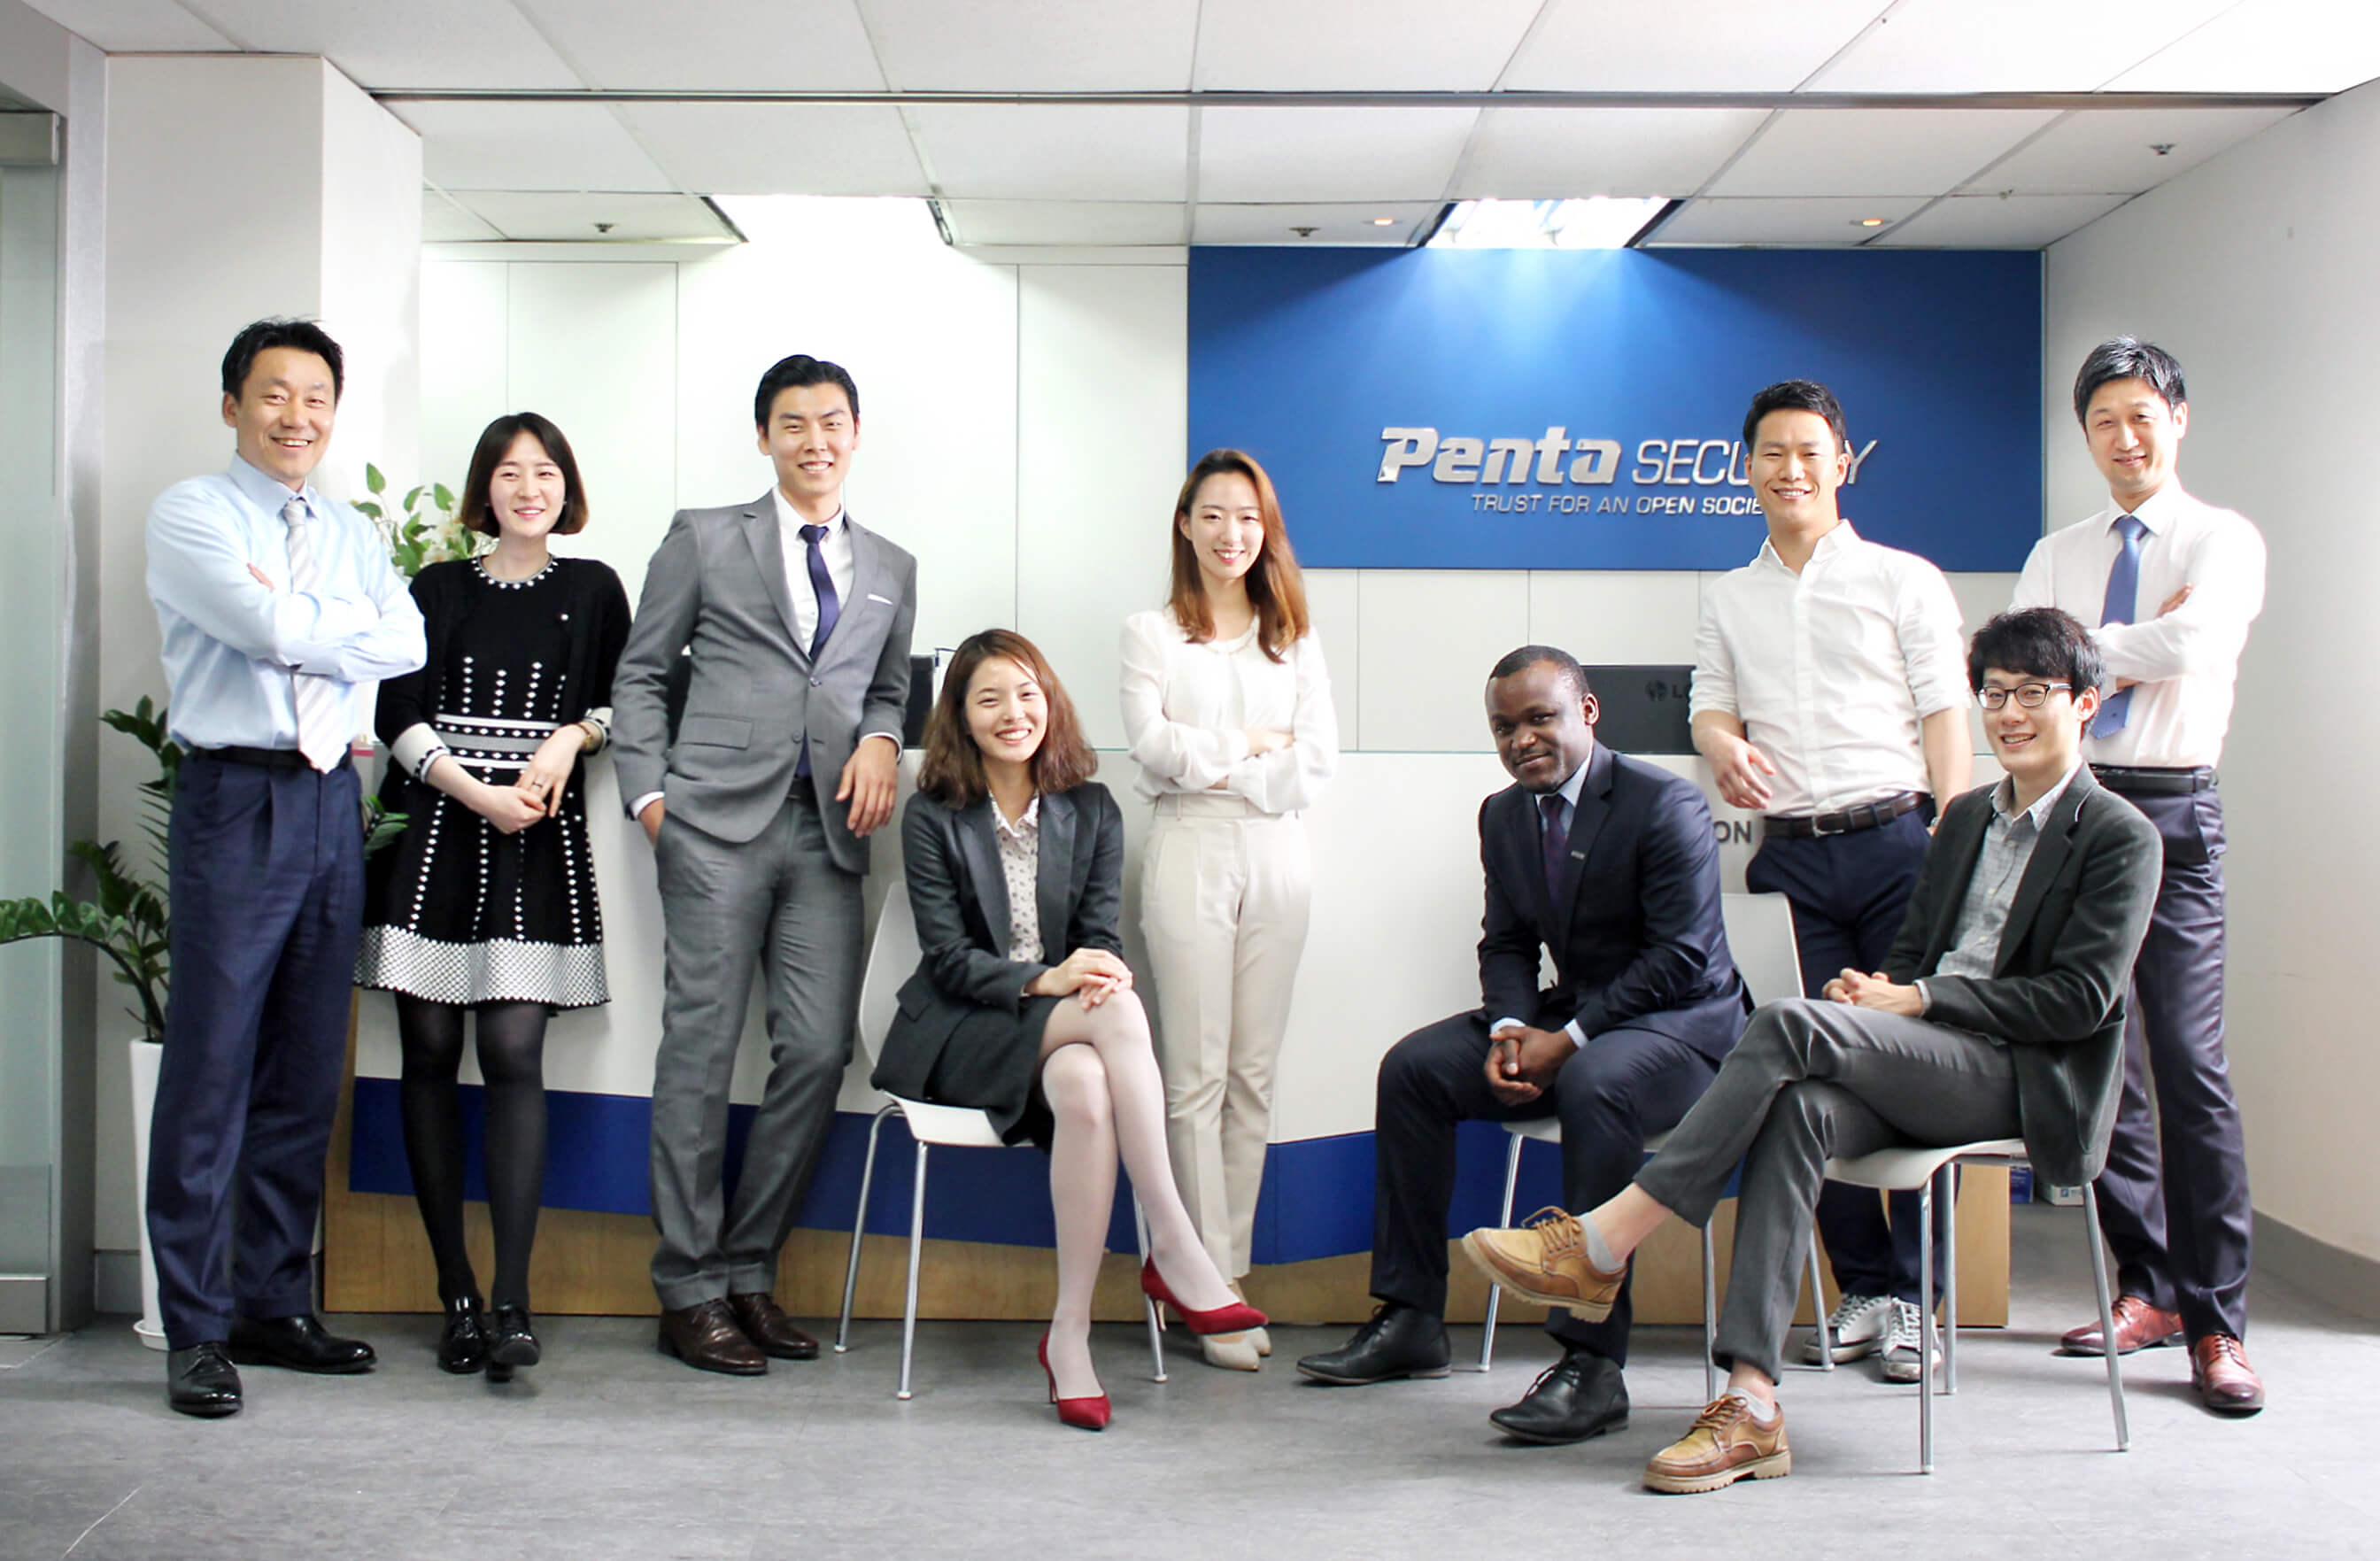 penta security jobs careers employees group image